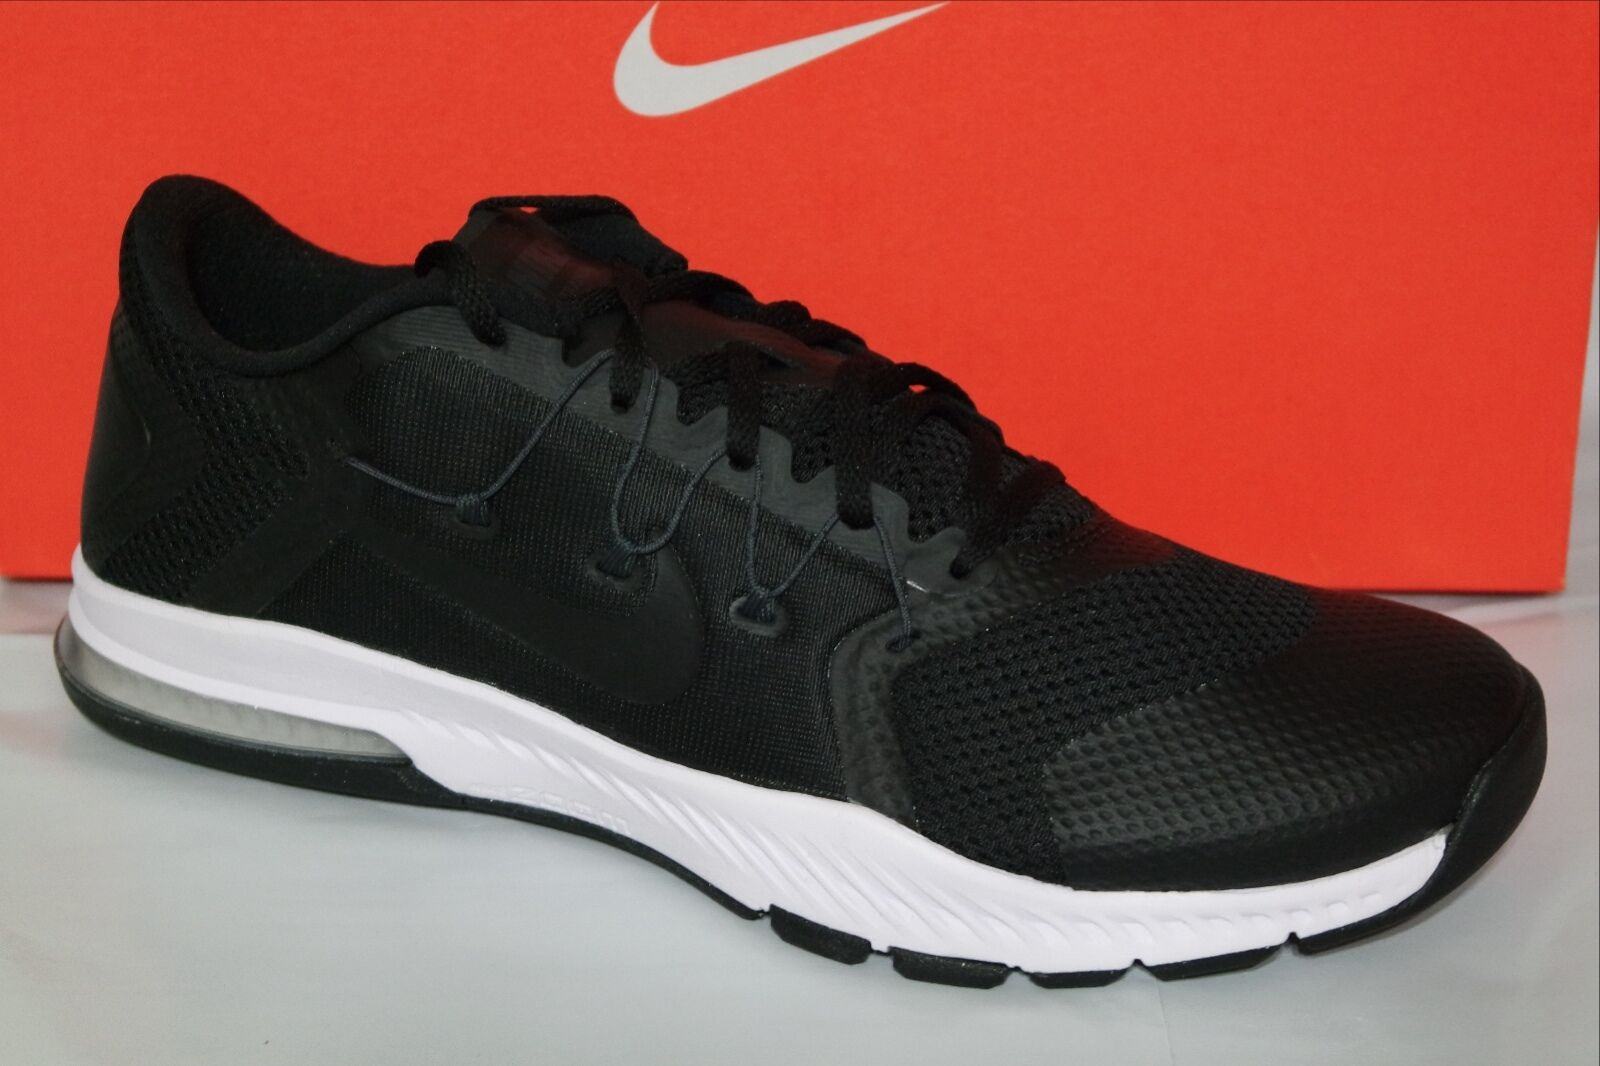 NIKE ZOOM TRAIN COMPLETE MEN'S TRAINING SHOE, BLK WHITE, SIZE 9 & 10, 882119 002